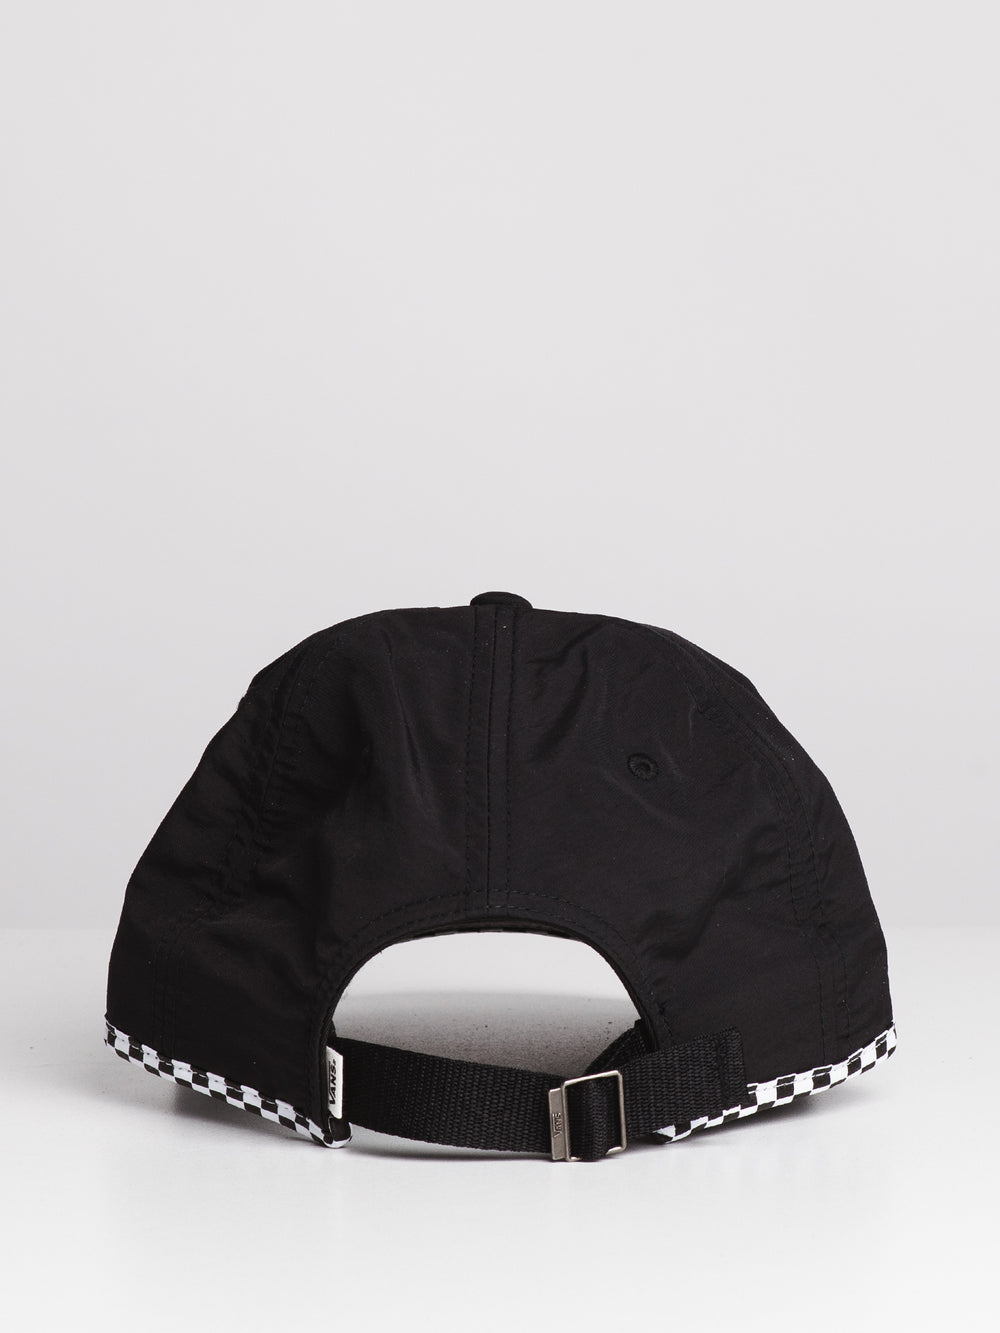 CHECK IT TWICE HAT - BLACK